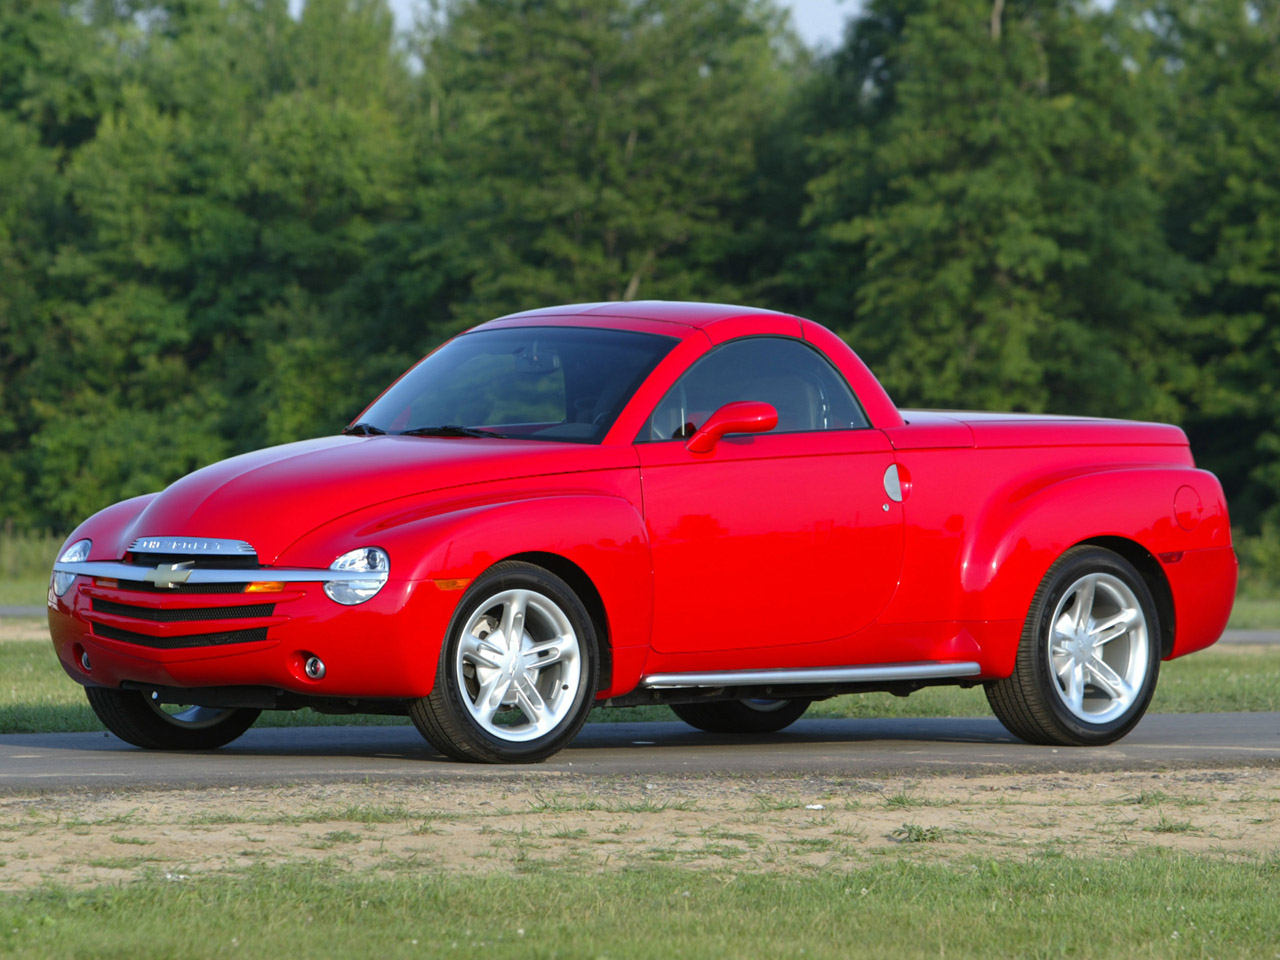 2003 chevrolet ssr information and photos momentcar Chevy Tahoe Wiring Diagram  2005 Chevy Impala Headlight Wiring Diagram Chevy Impala Wiring Diagram 05 2500HD Seat Diagram